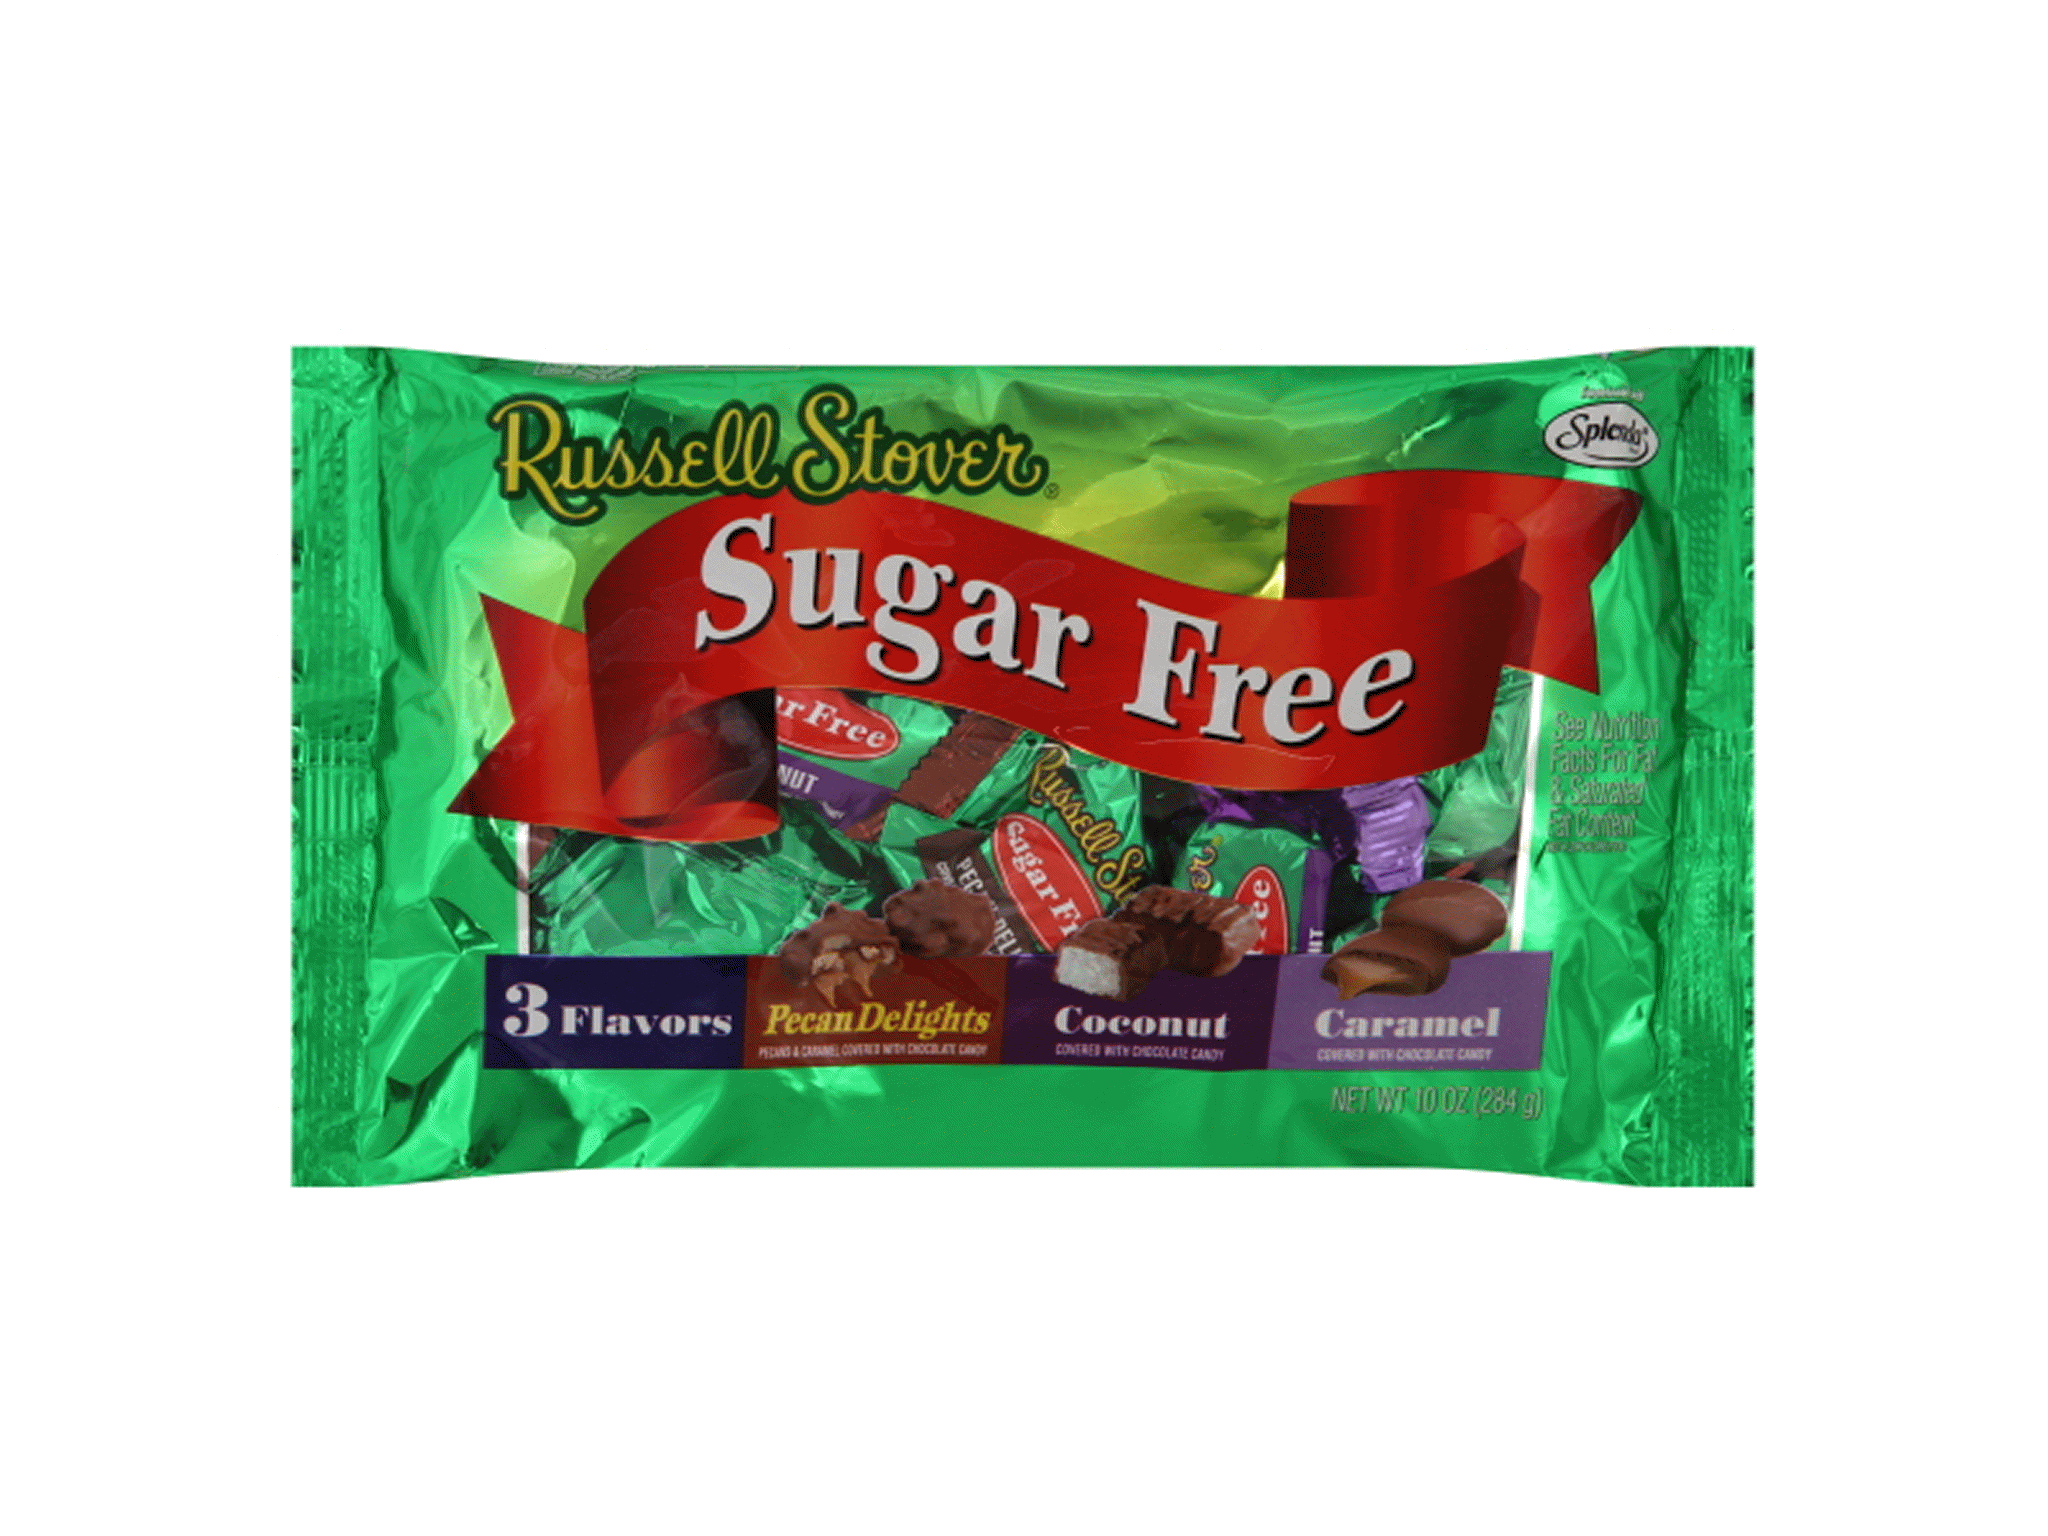 russell stover 10 oz sugar free multi flavor chocolate candies